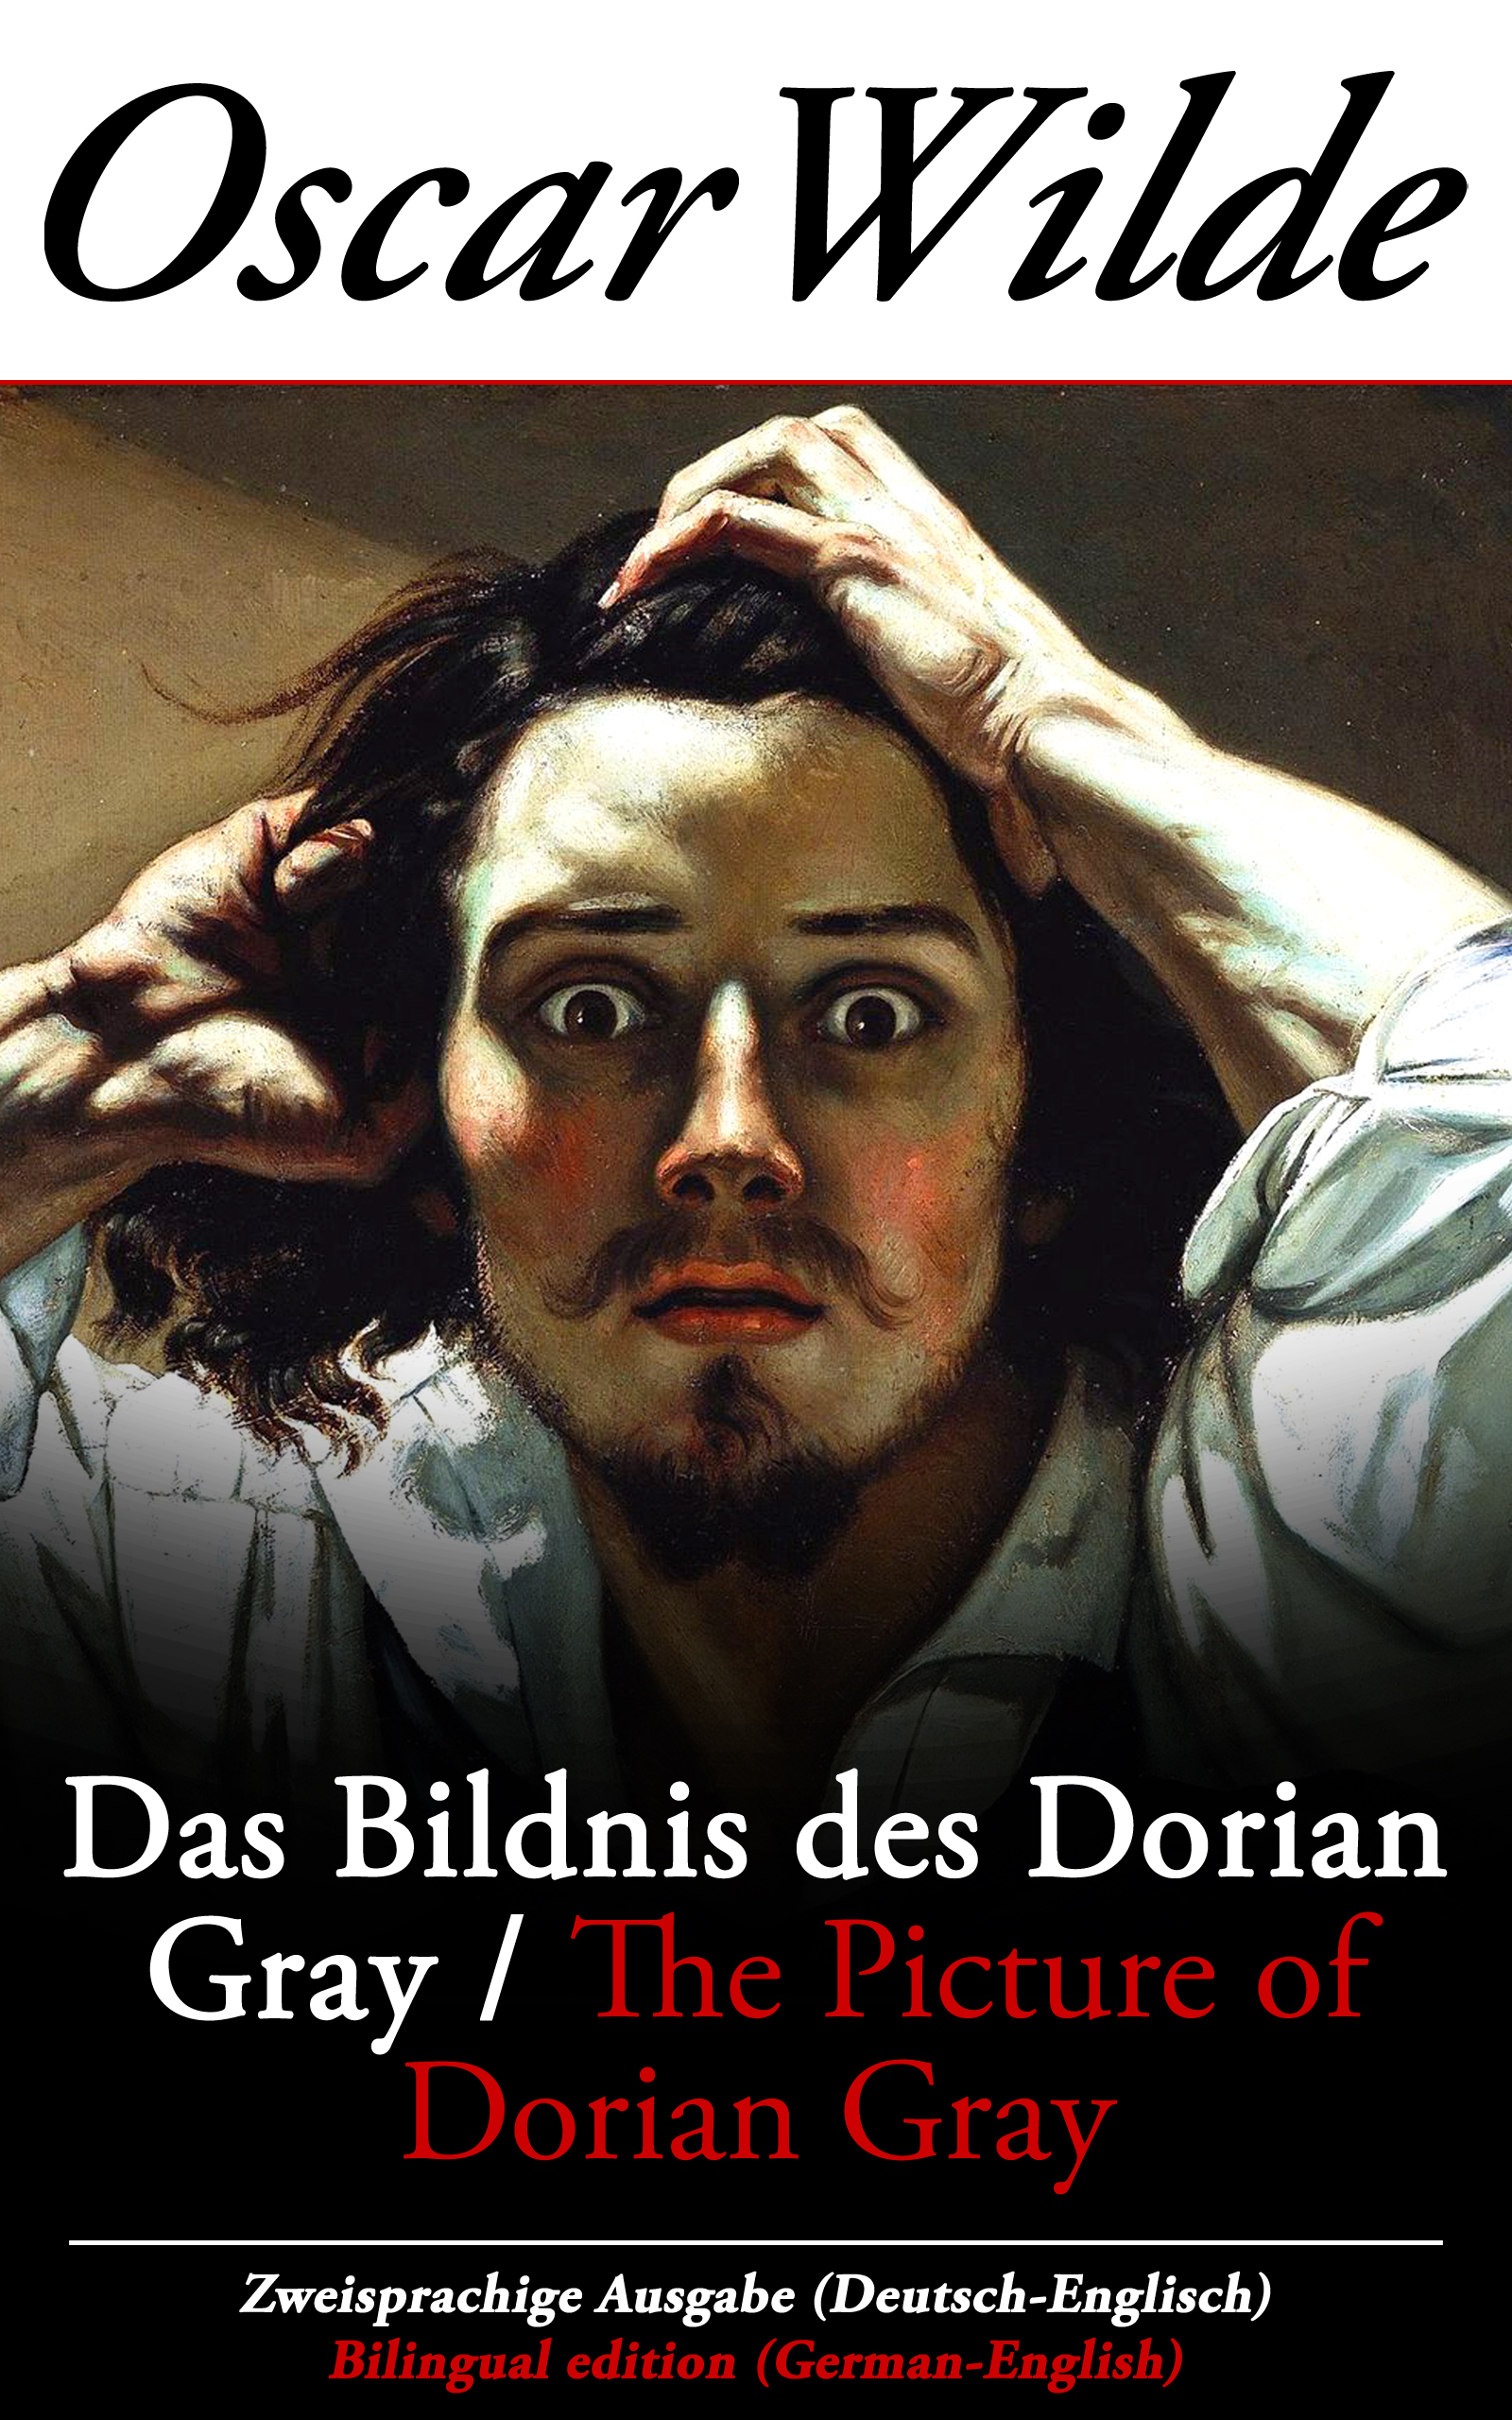 Оскар Уайльд Das Bildnis des Dorian Gray / The Picture of Dorian Gray - Zweisprachige Ausgabe (Deutsch-Englisch) / Bilingual edition (German-English)